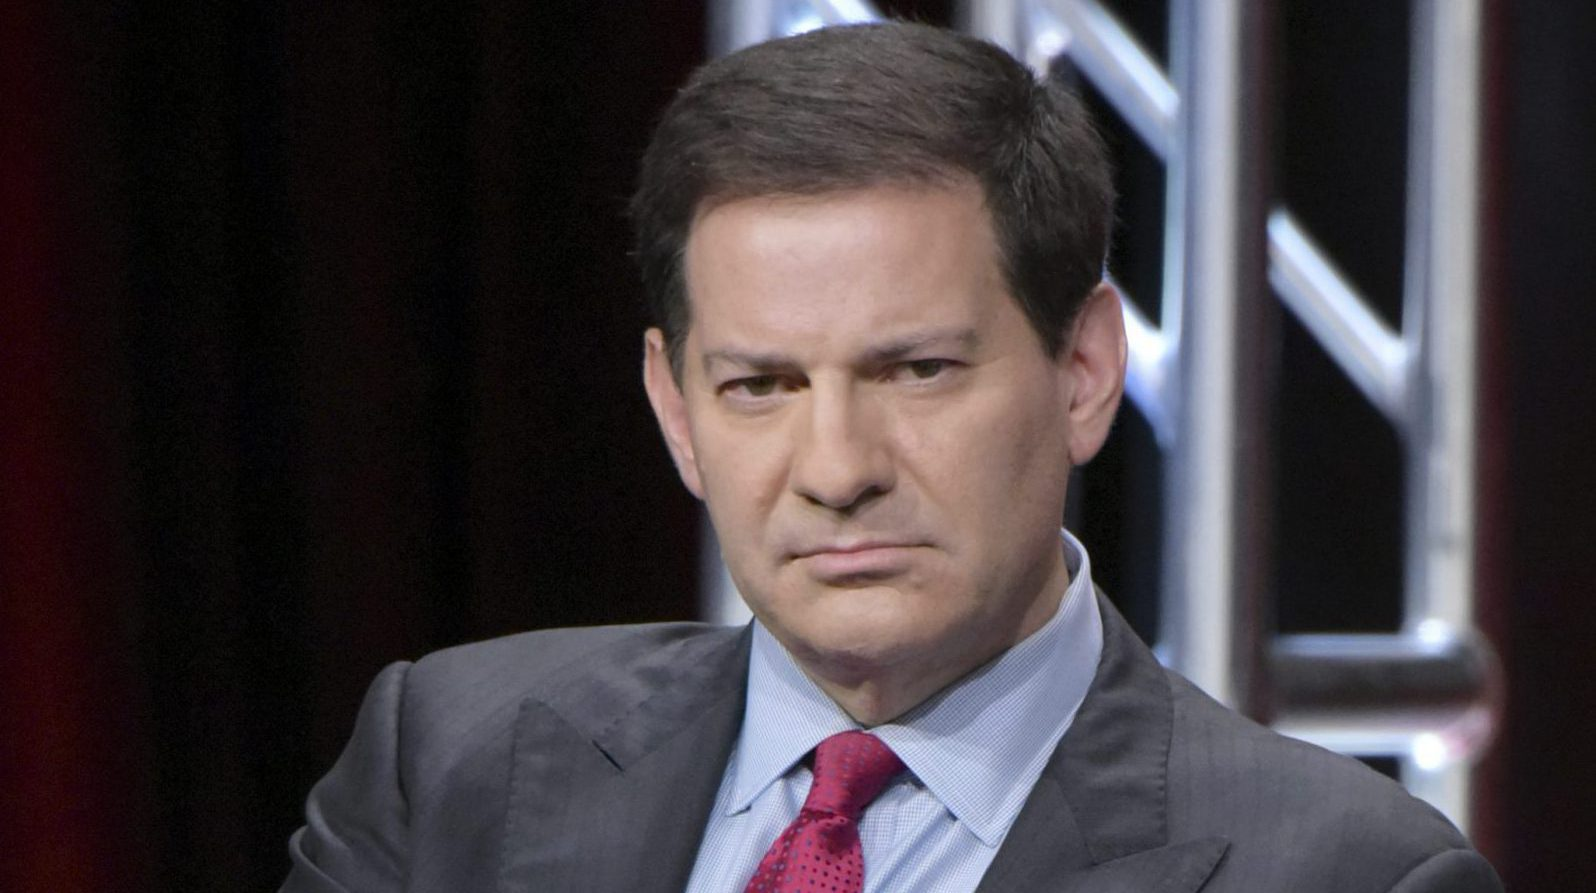 Mark halperin's accusers are resorting to the court of public opinion